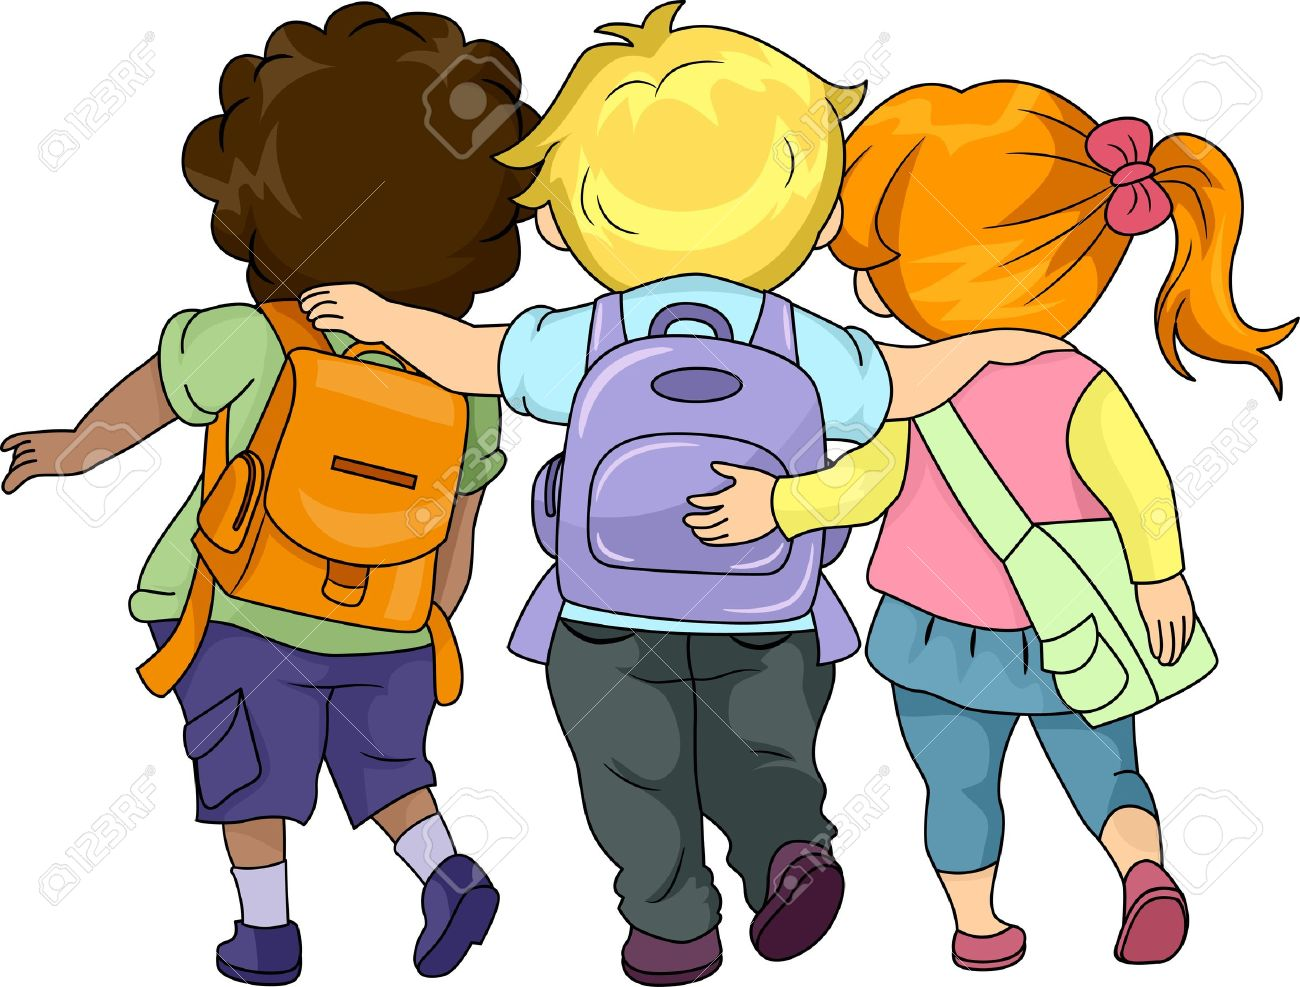 Illustration Of Kids Walking To School Together Stock Photo.